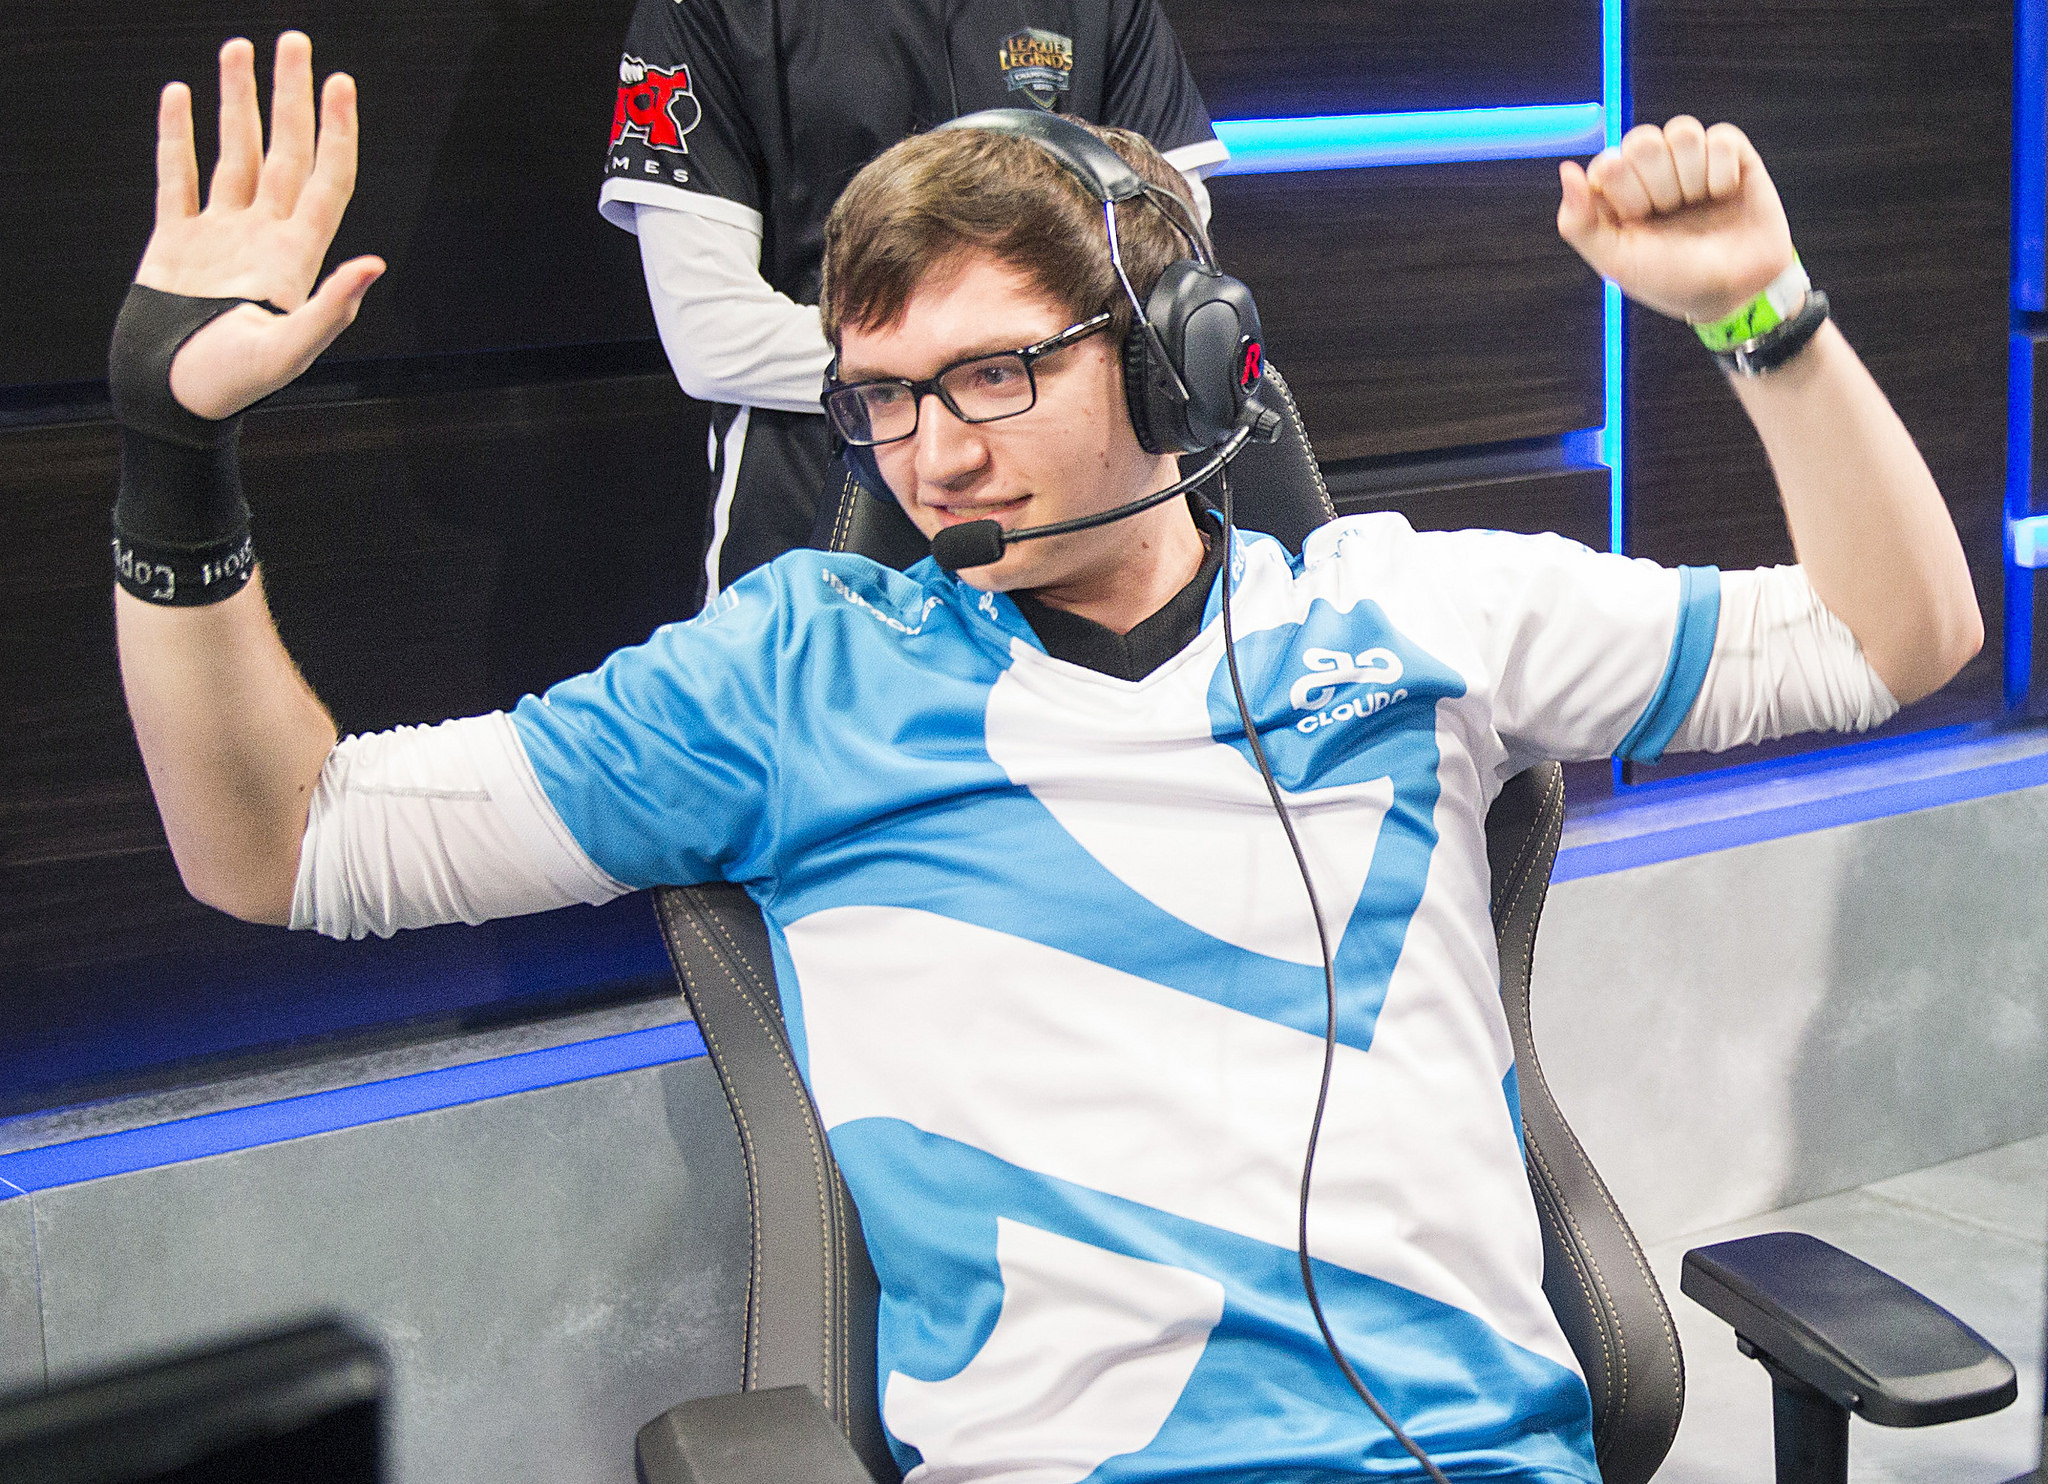 Meteos playing LCS for Cloud9